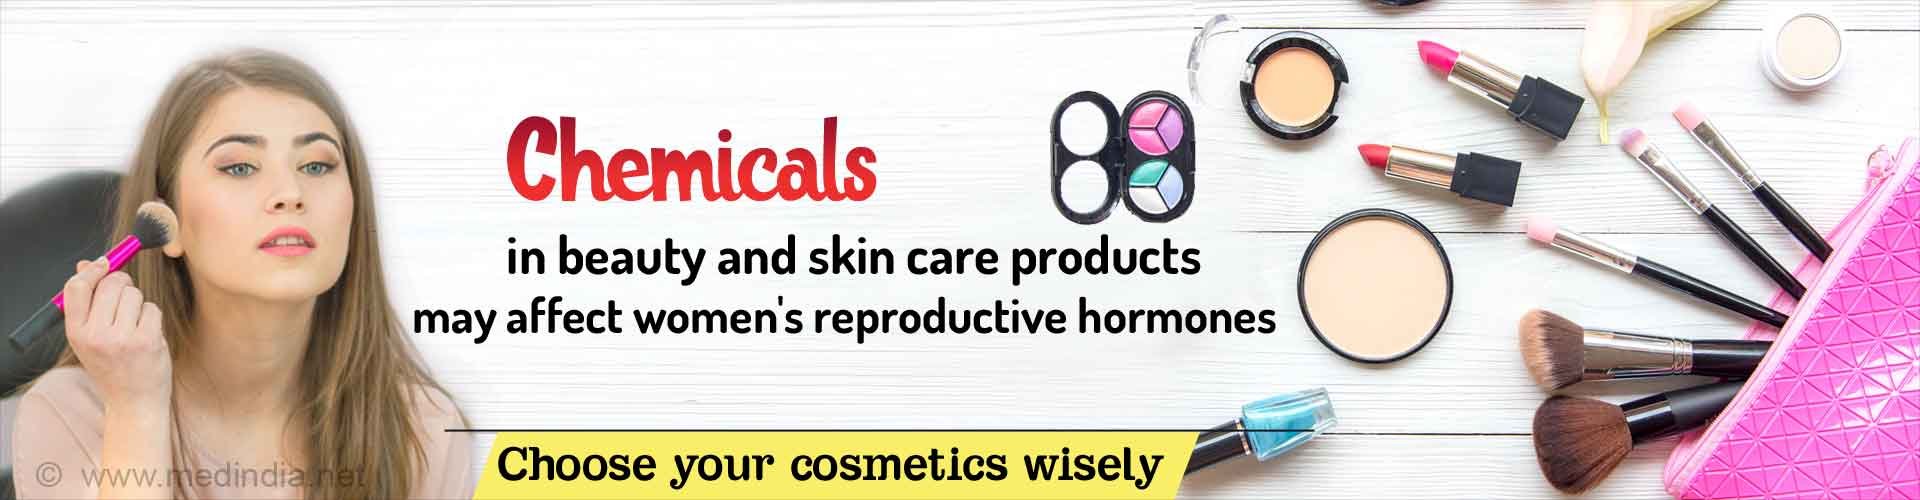 Chemicals in beauty and skin care products may affect women's reproductive hormones. Choose your cosmetics wisely.